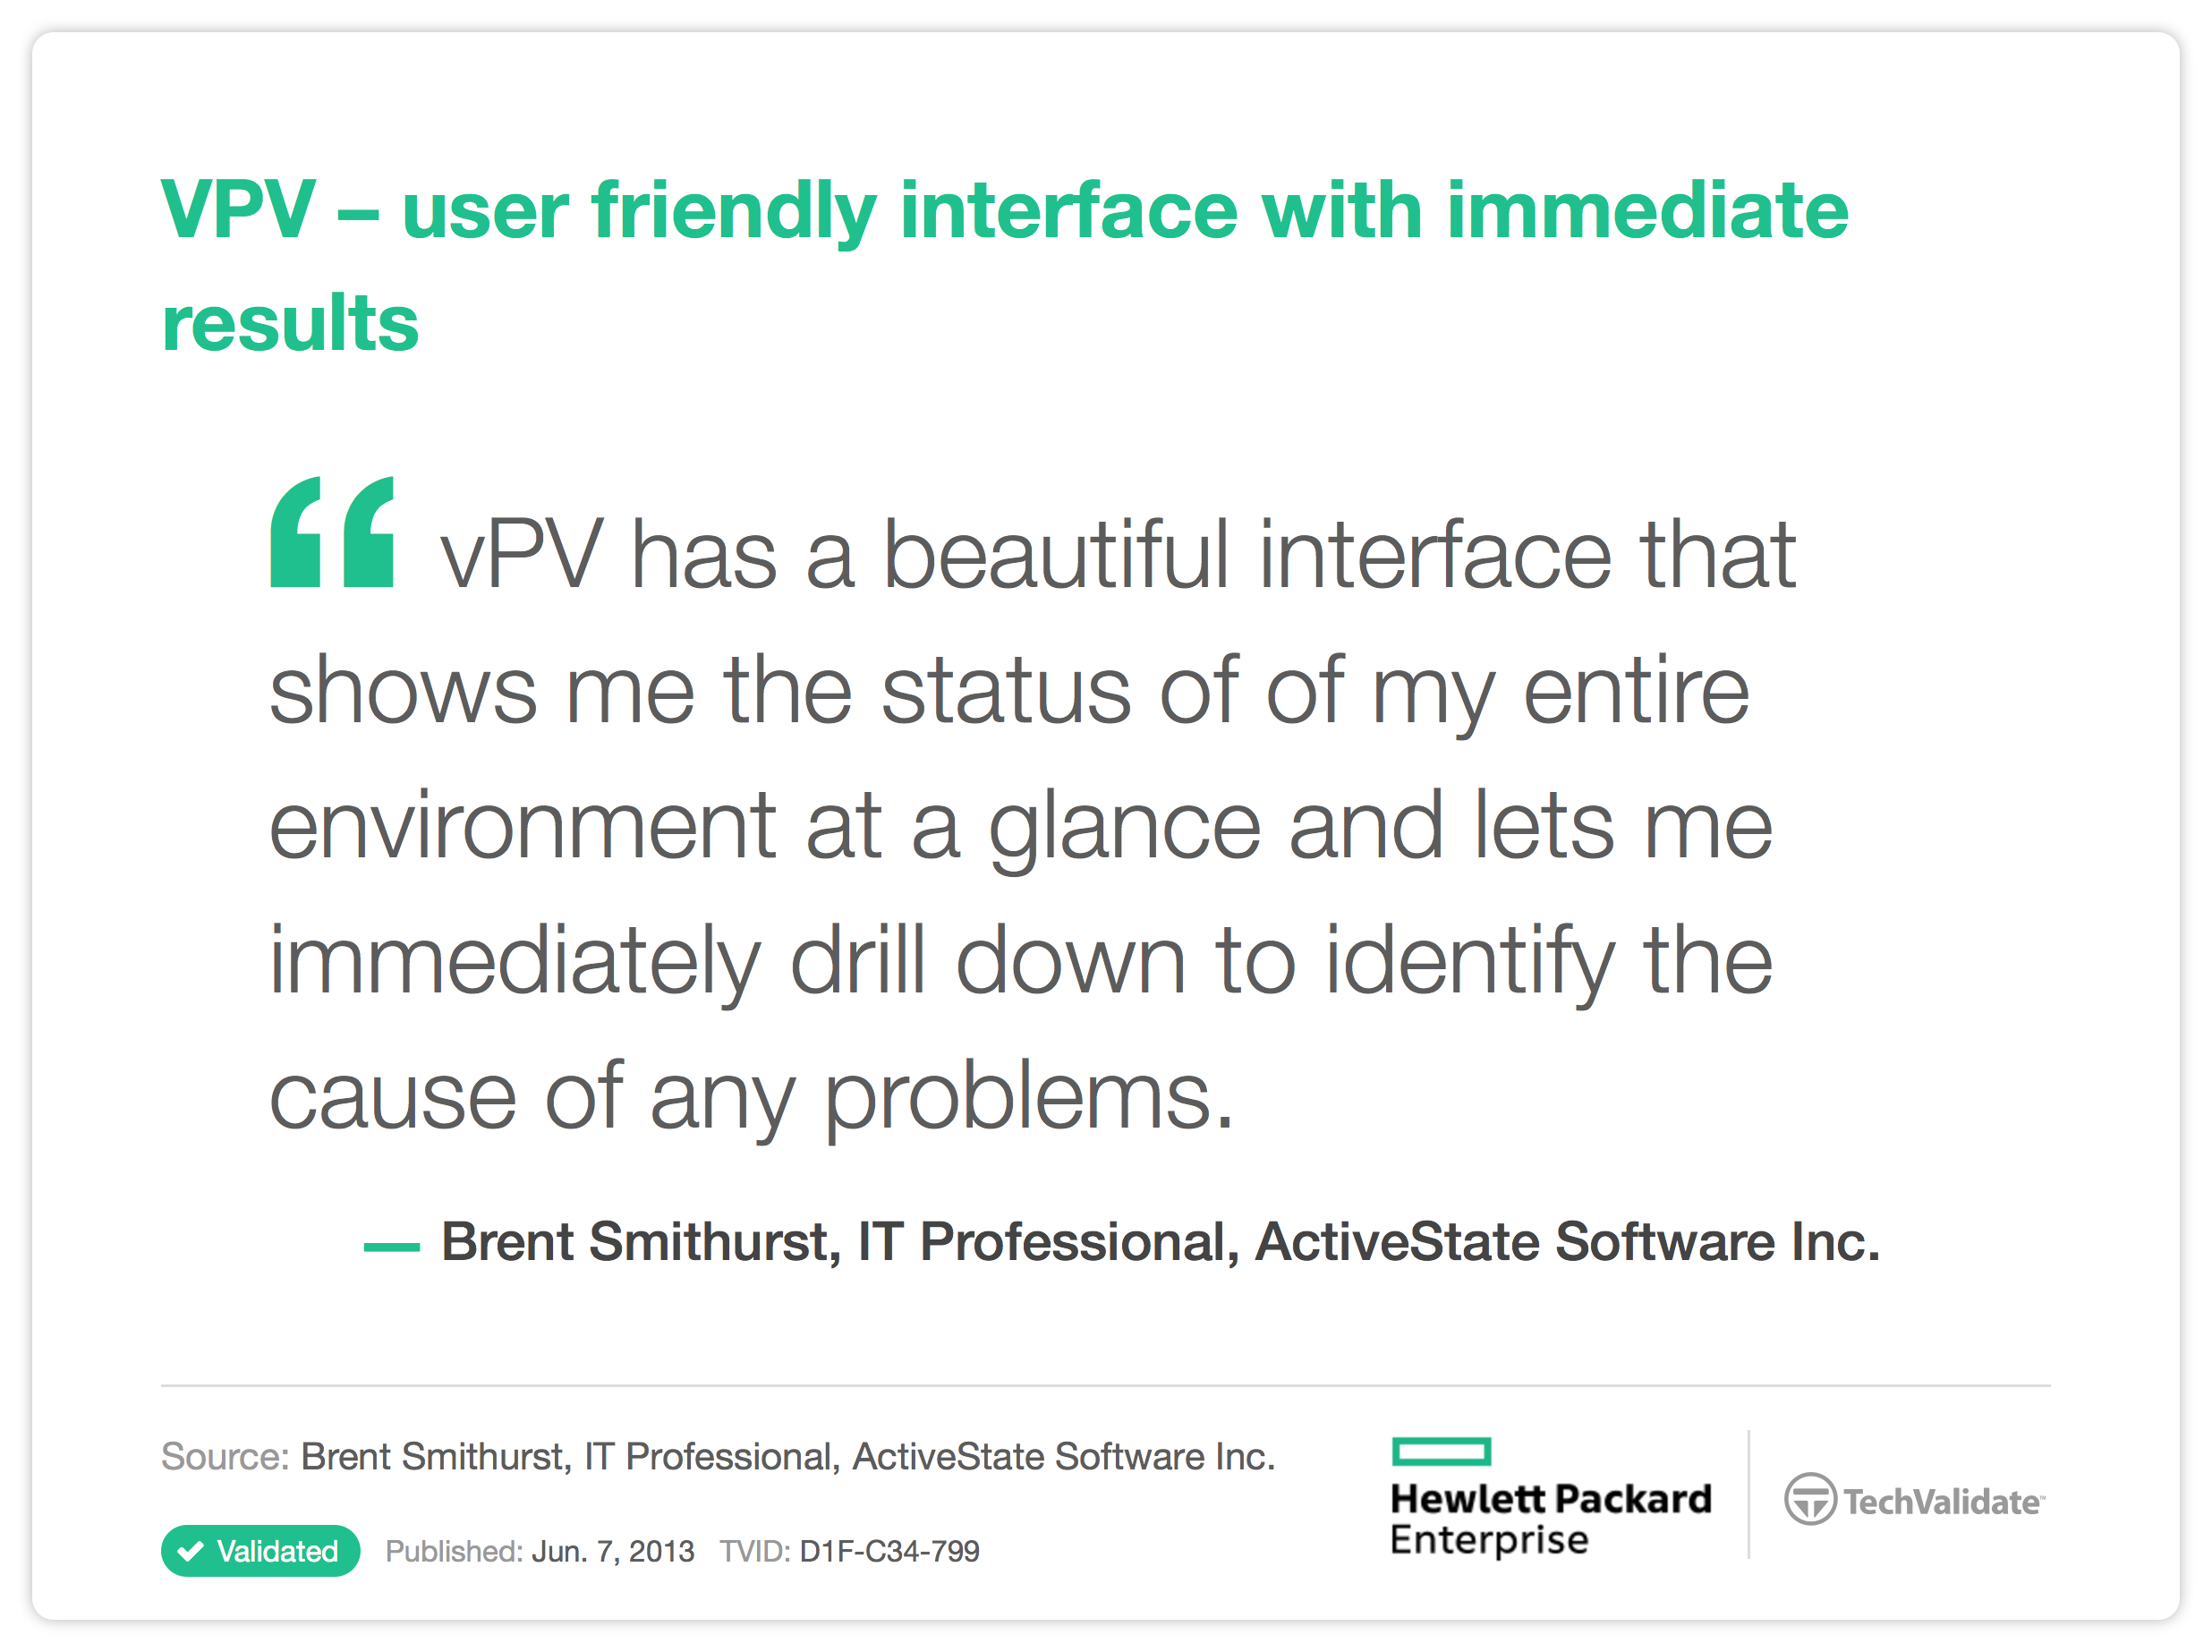 VPV - user friendly interface with immediate results